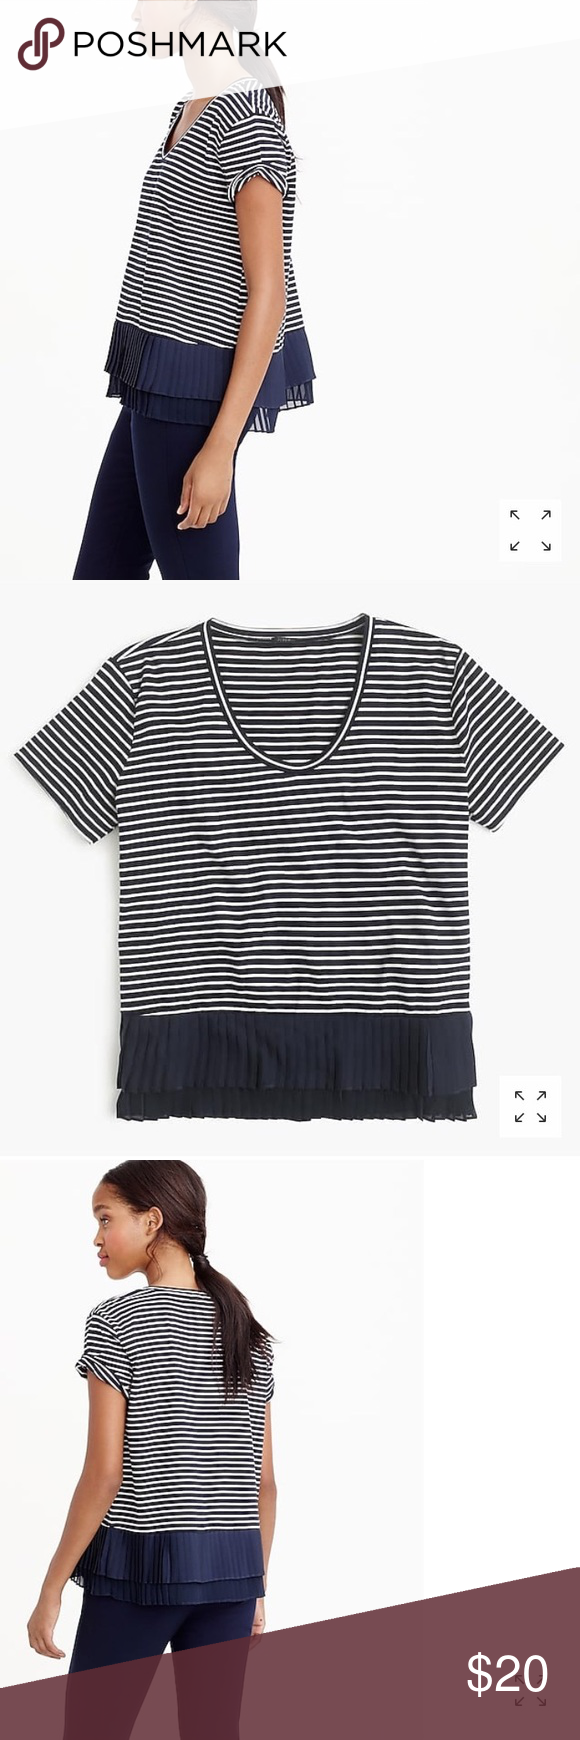 a136fa32 J. Crew Women's Pleated Chiffon Hem T-Shirt Navy and white striped pleated  Chiffon t-shirt. New without tags! J. Crew Tops Tees - Short Sleeve